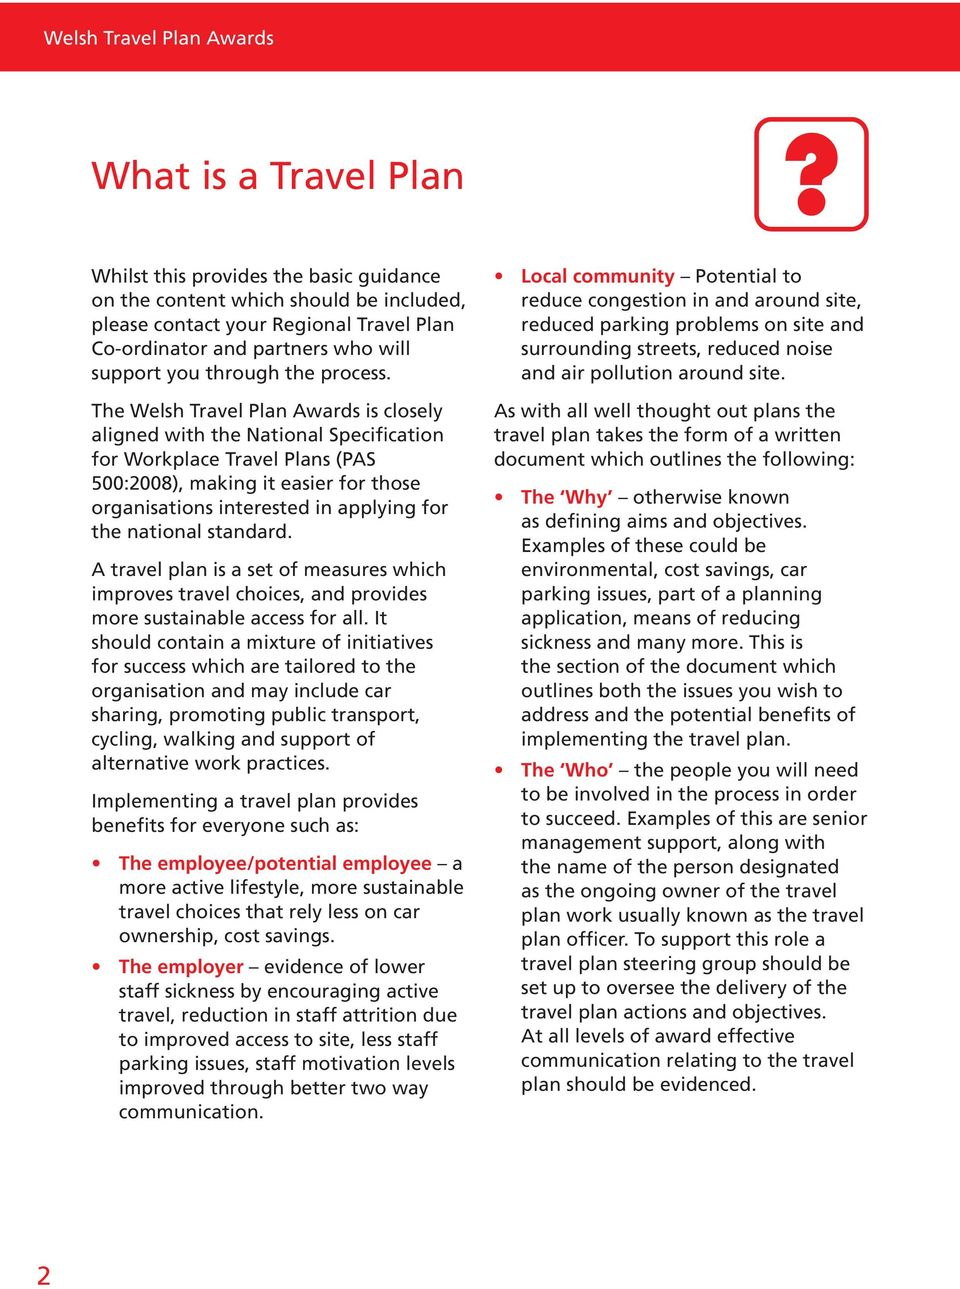 The Welsh Travel Plan Awards is closely aligned with the National Specification for Workplace Travel Plans (PAS 500:2008), making it easier for those organisations interested in applying for the